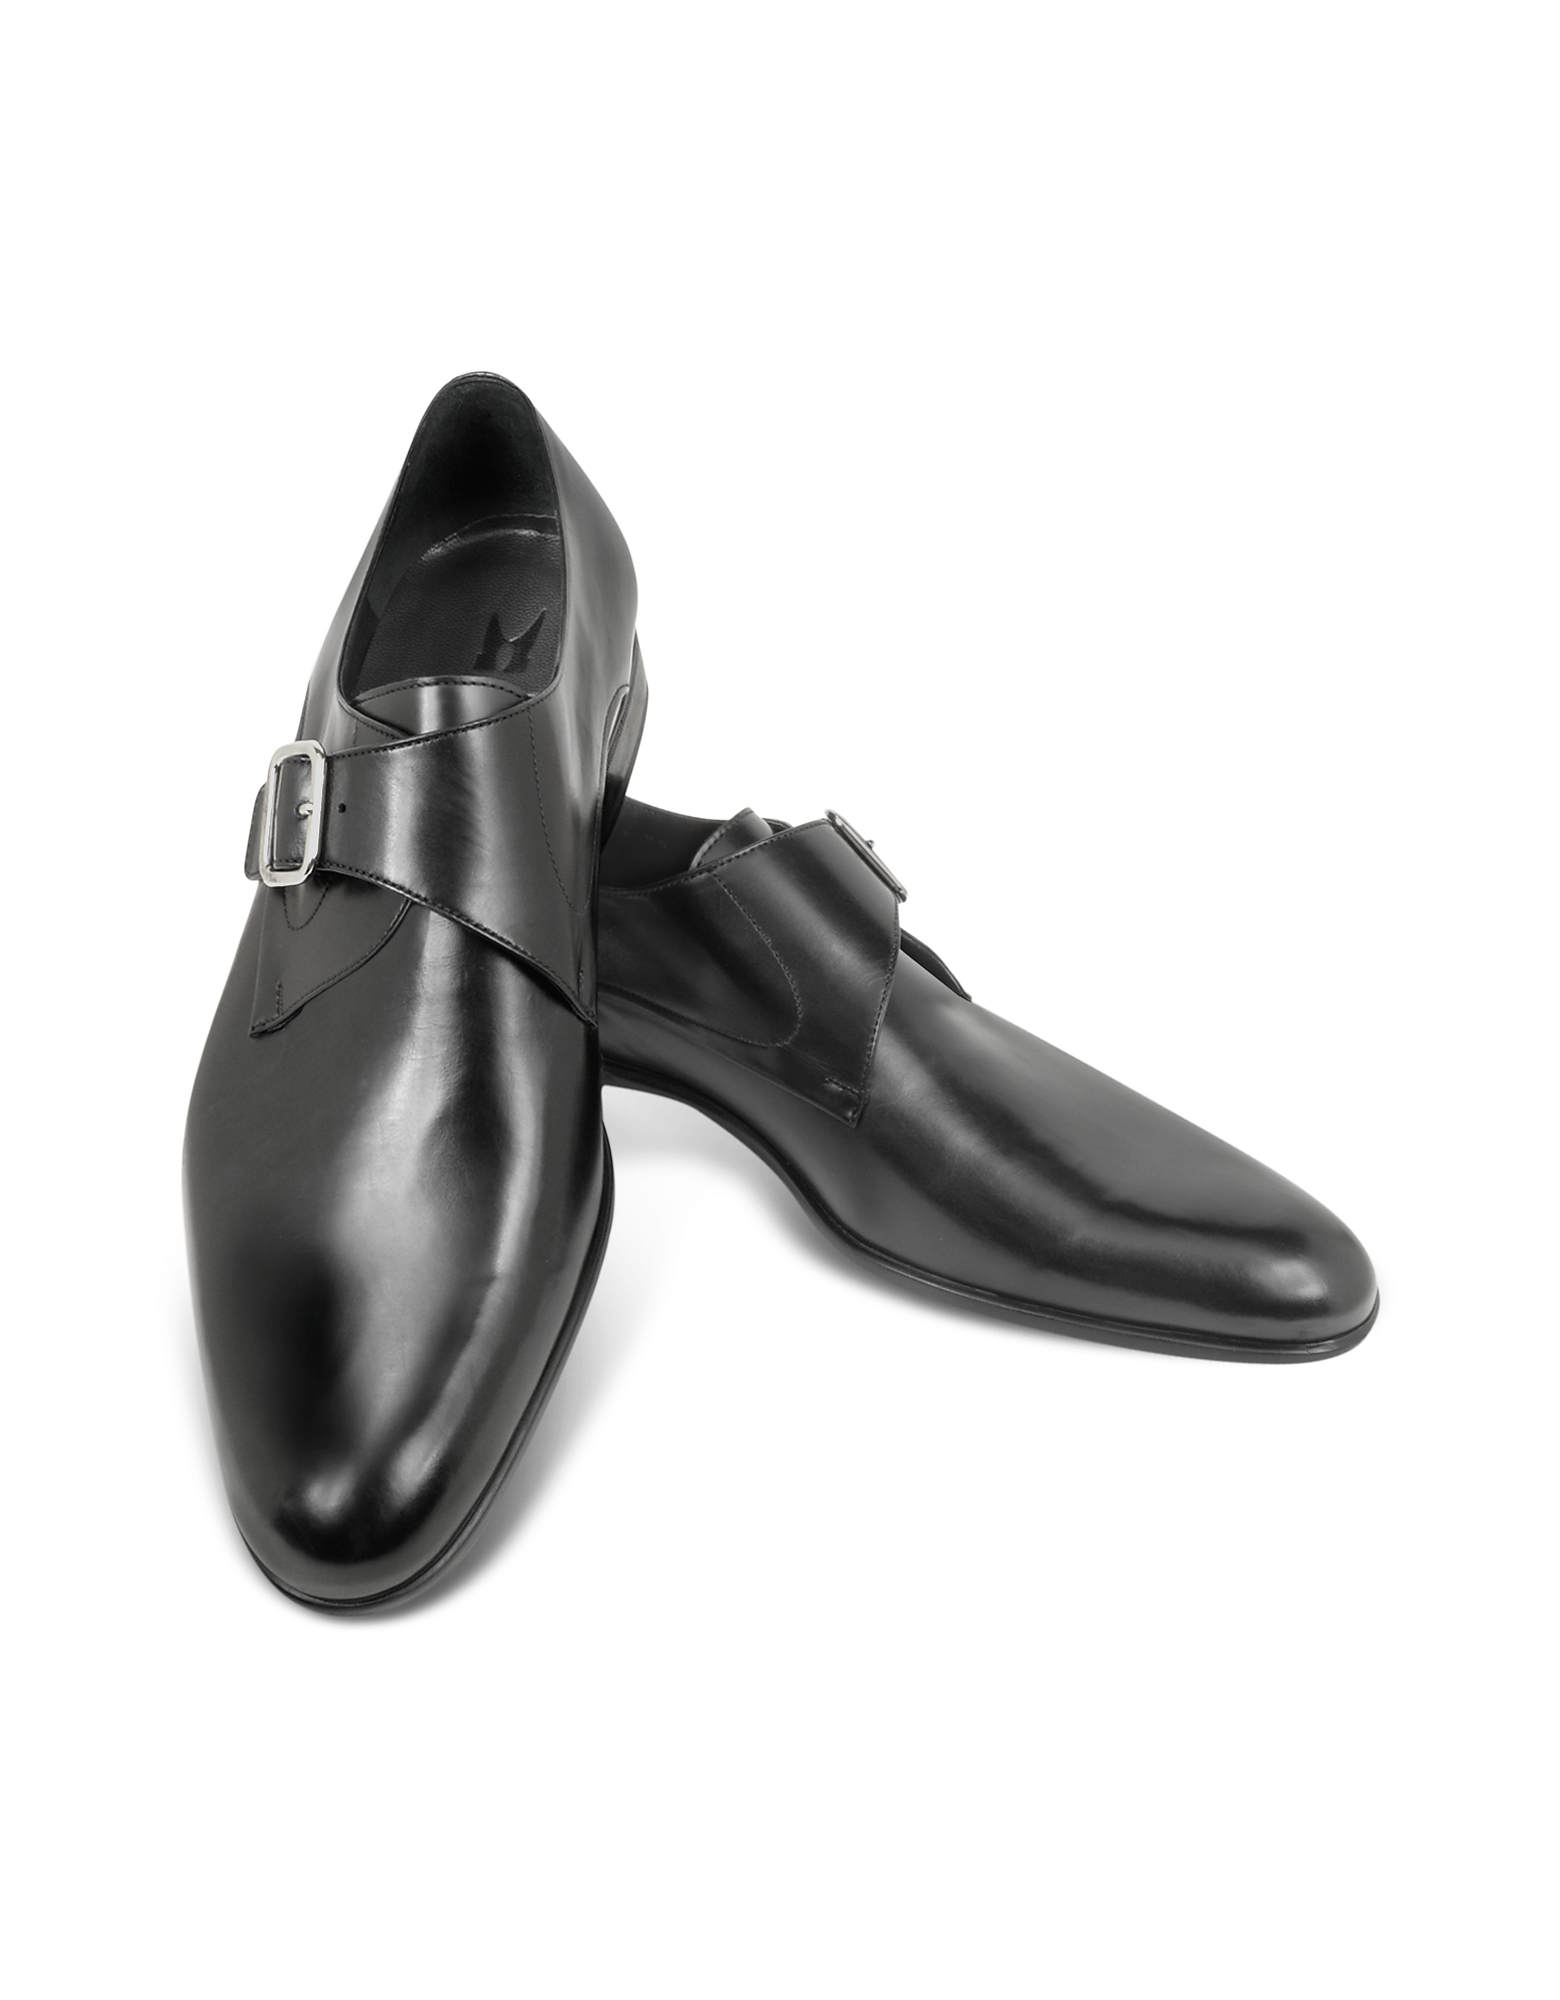 Moreschi Shoes, Kobe Black Leather Monk Strap Shoes